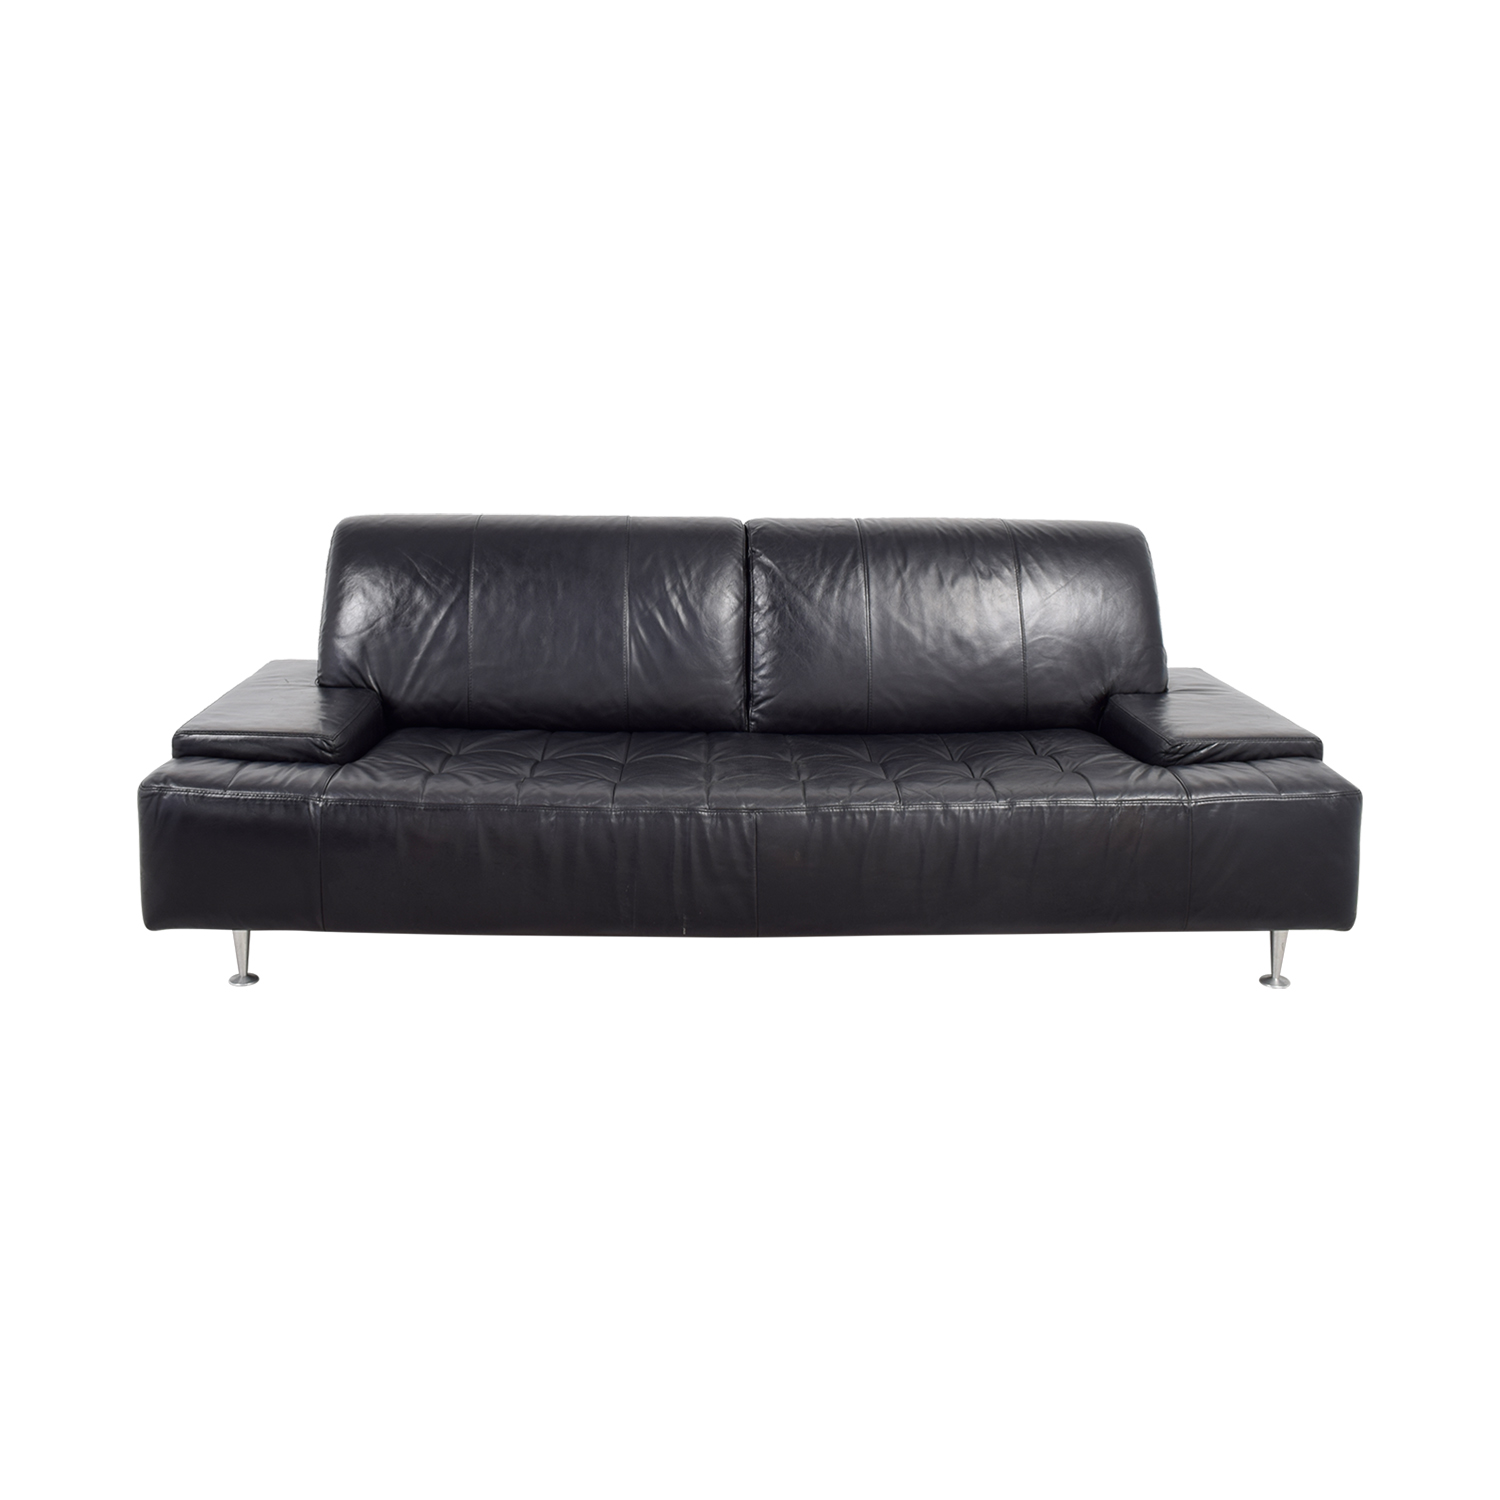 Black Leather Tufted Couch used